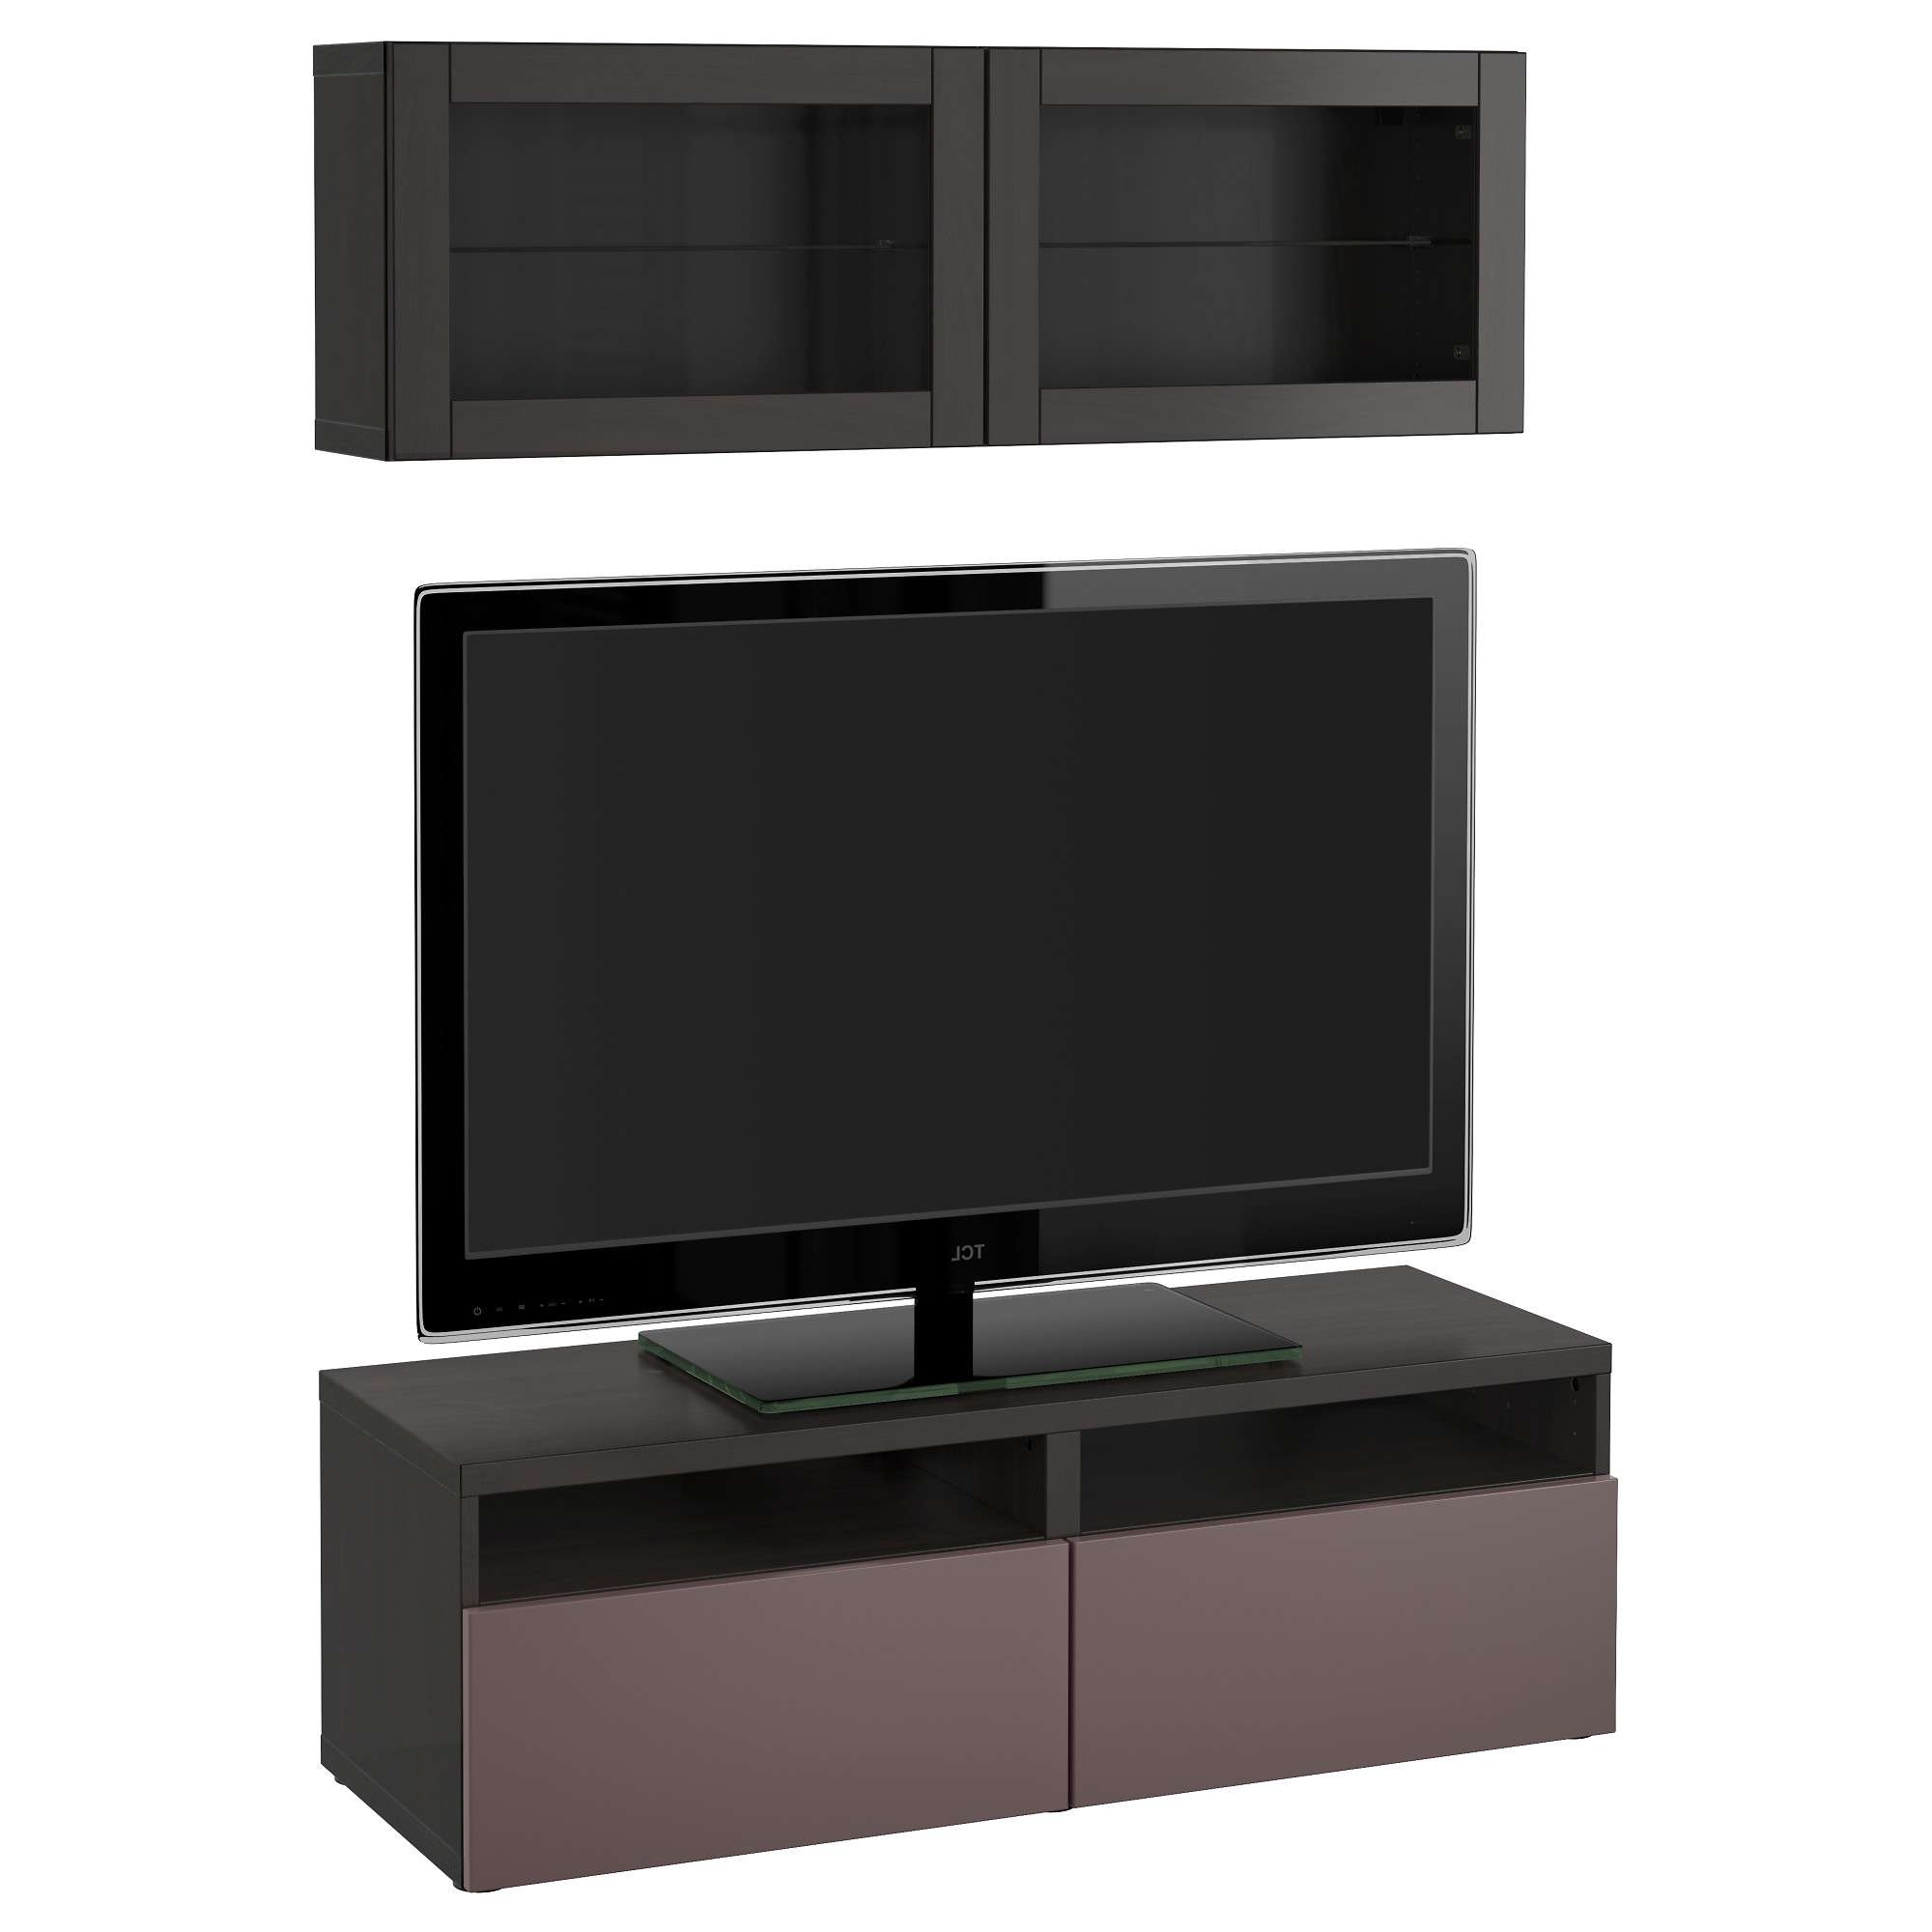 Tv Stands & Tv Units | Ikea In Glass Tv Cabinets With Doors (View 14 of 20)